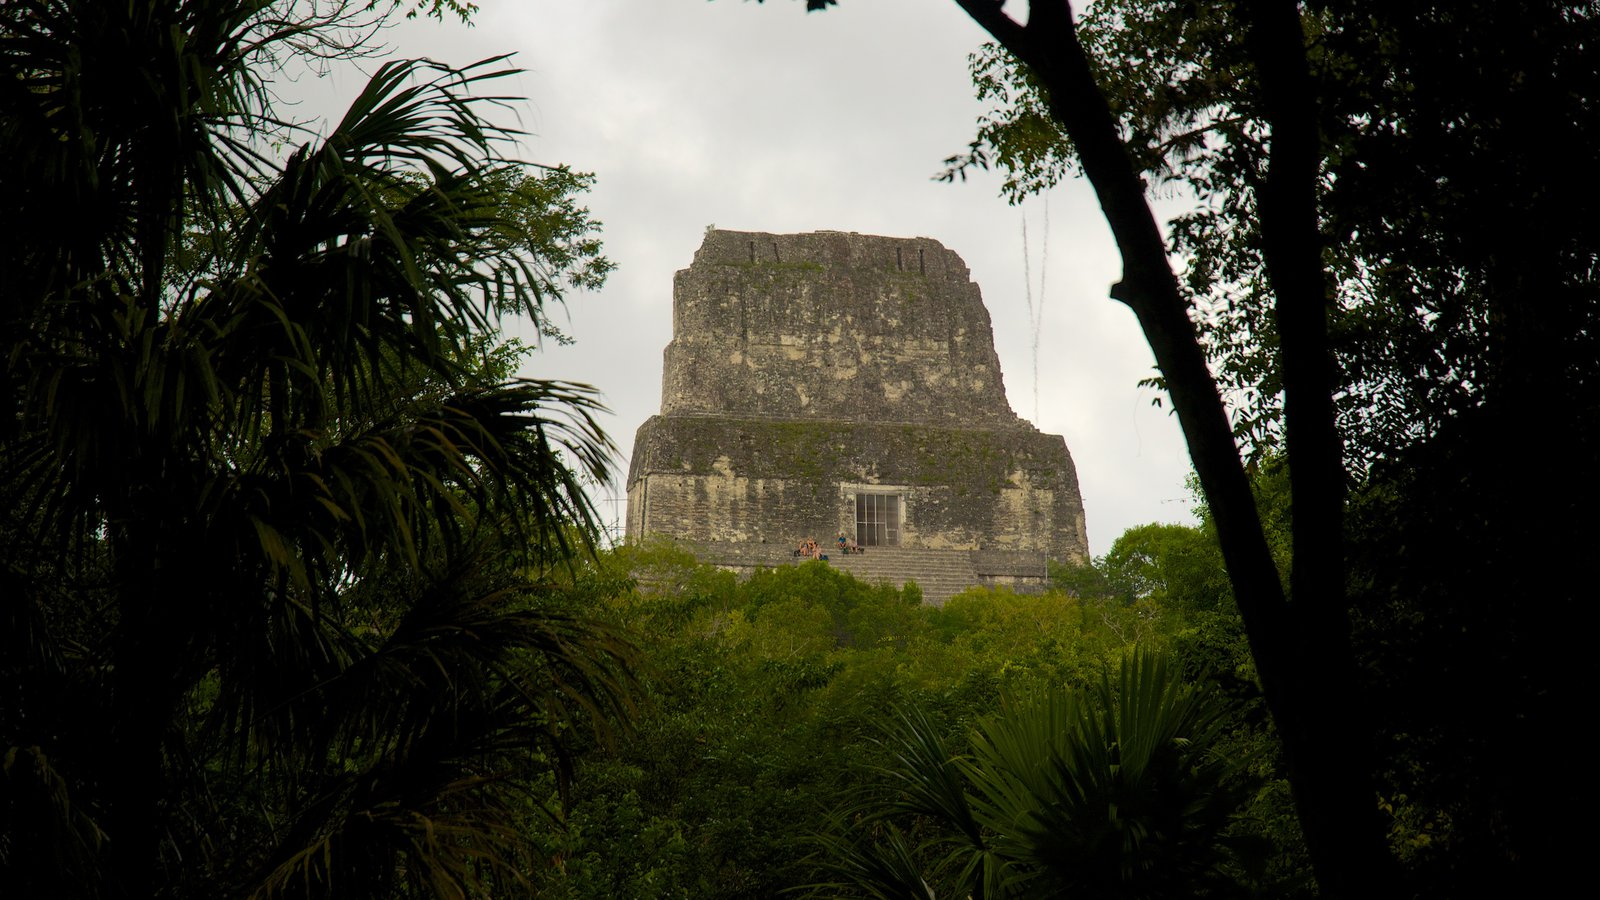 Tikal showing forest scenes and heritage elements